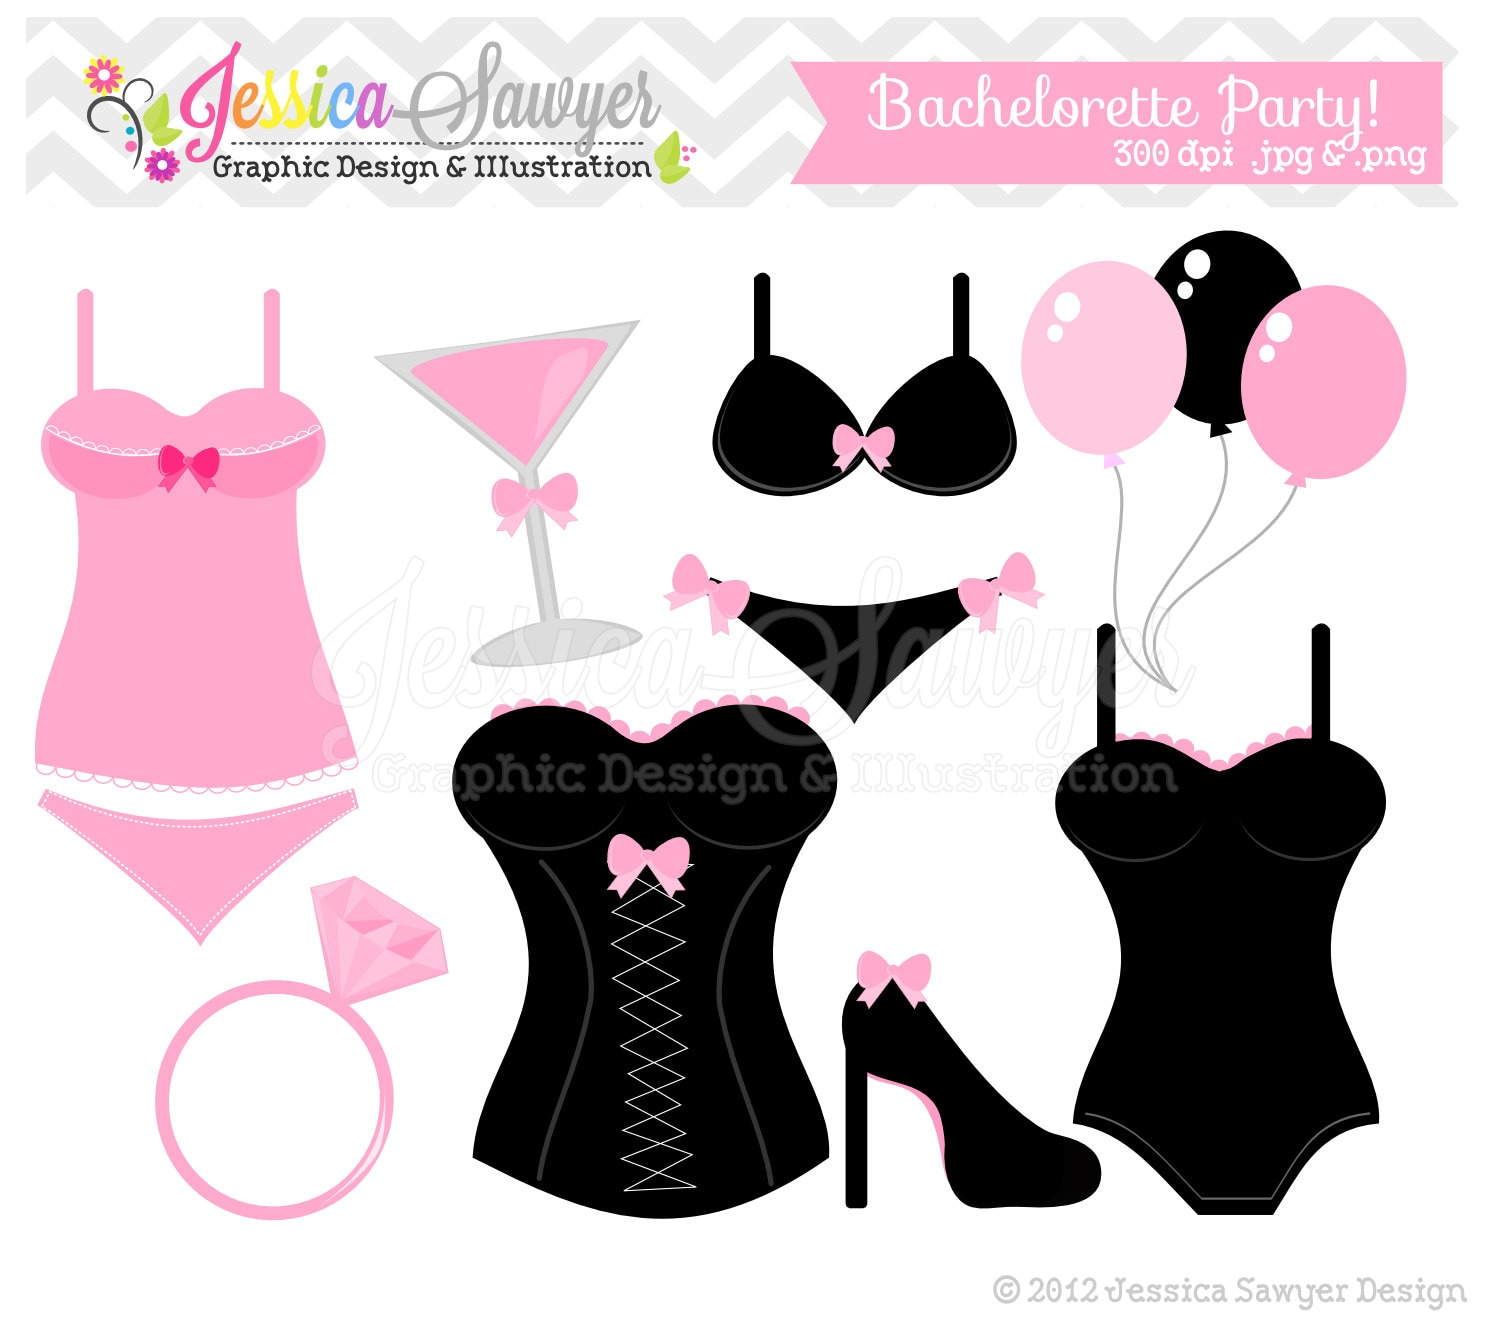 umbrellas lingerie glitzy couture it dont get you zebra love just creations shower